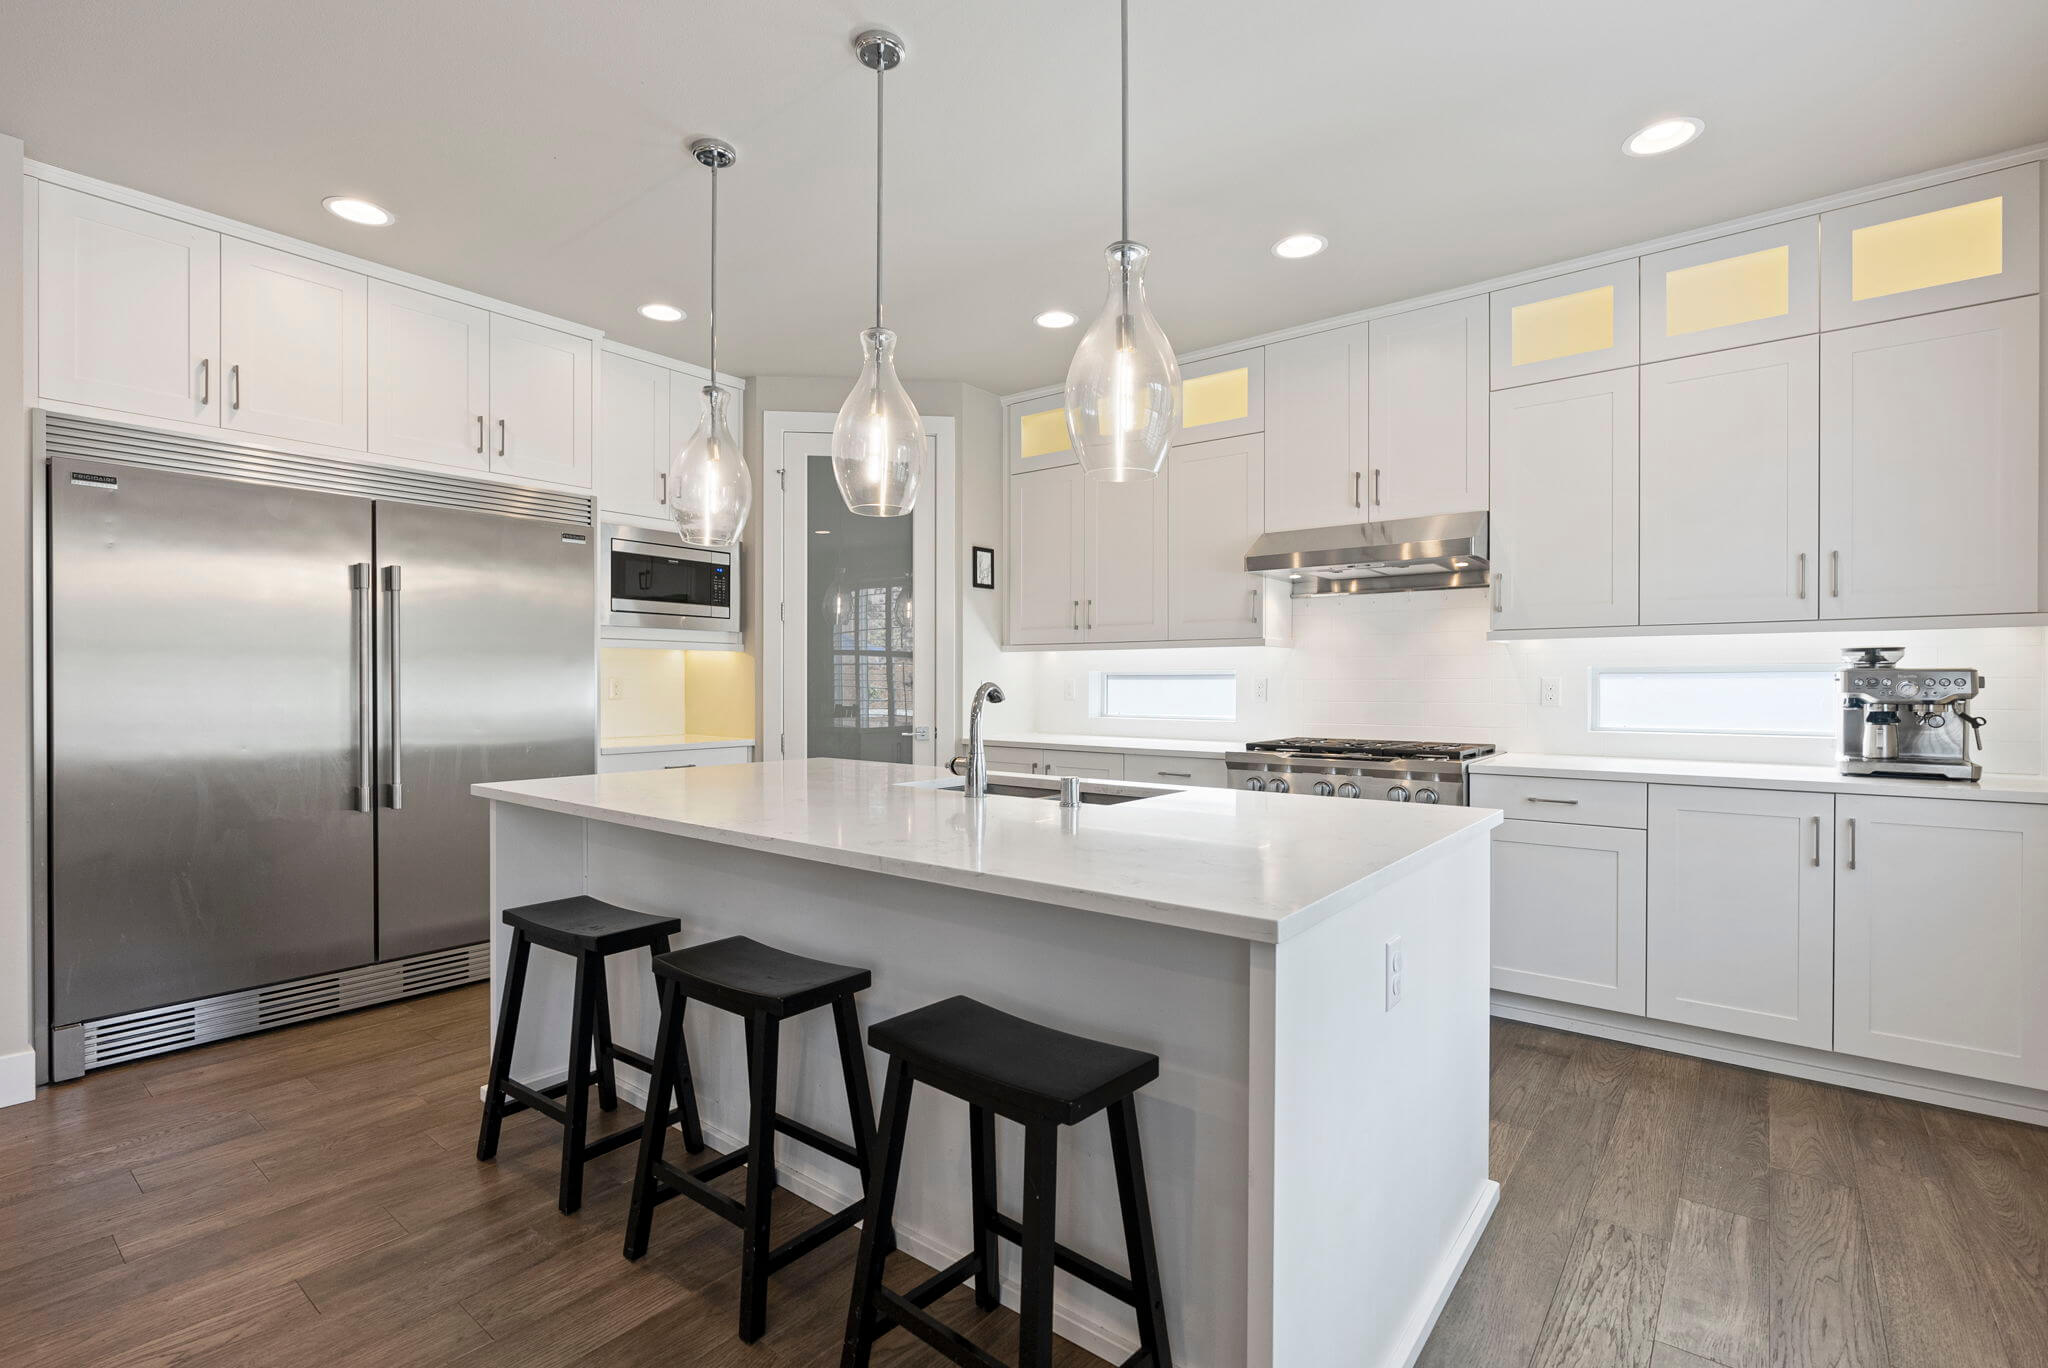 Quartz counters and stainless appliances, including a KitchenAid 6-burner gas range/oven